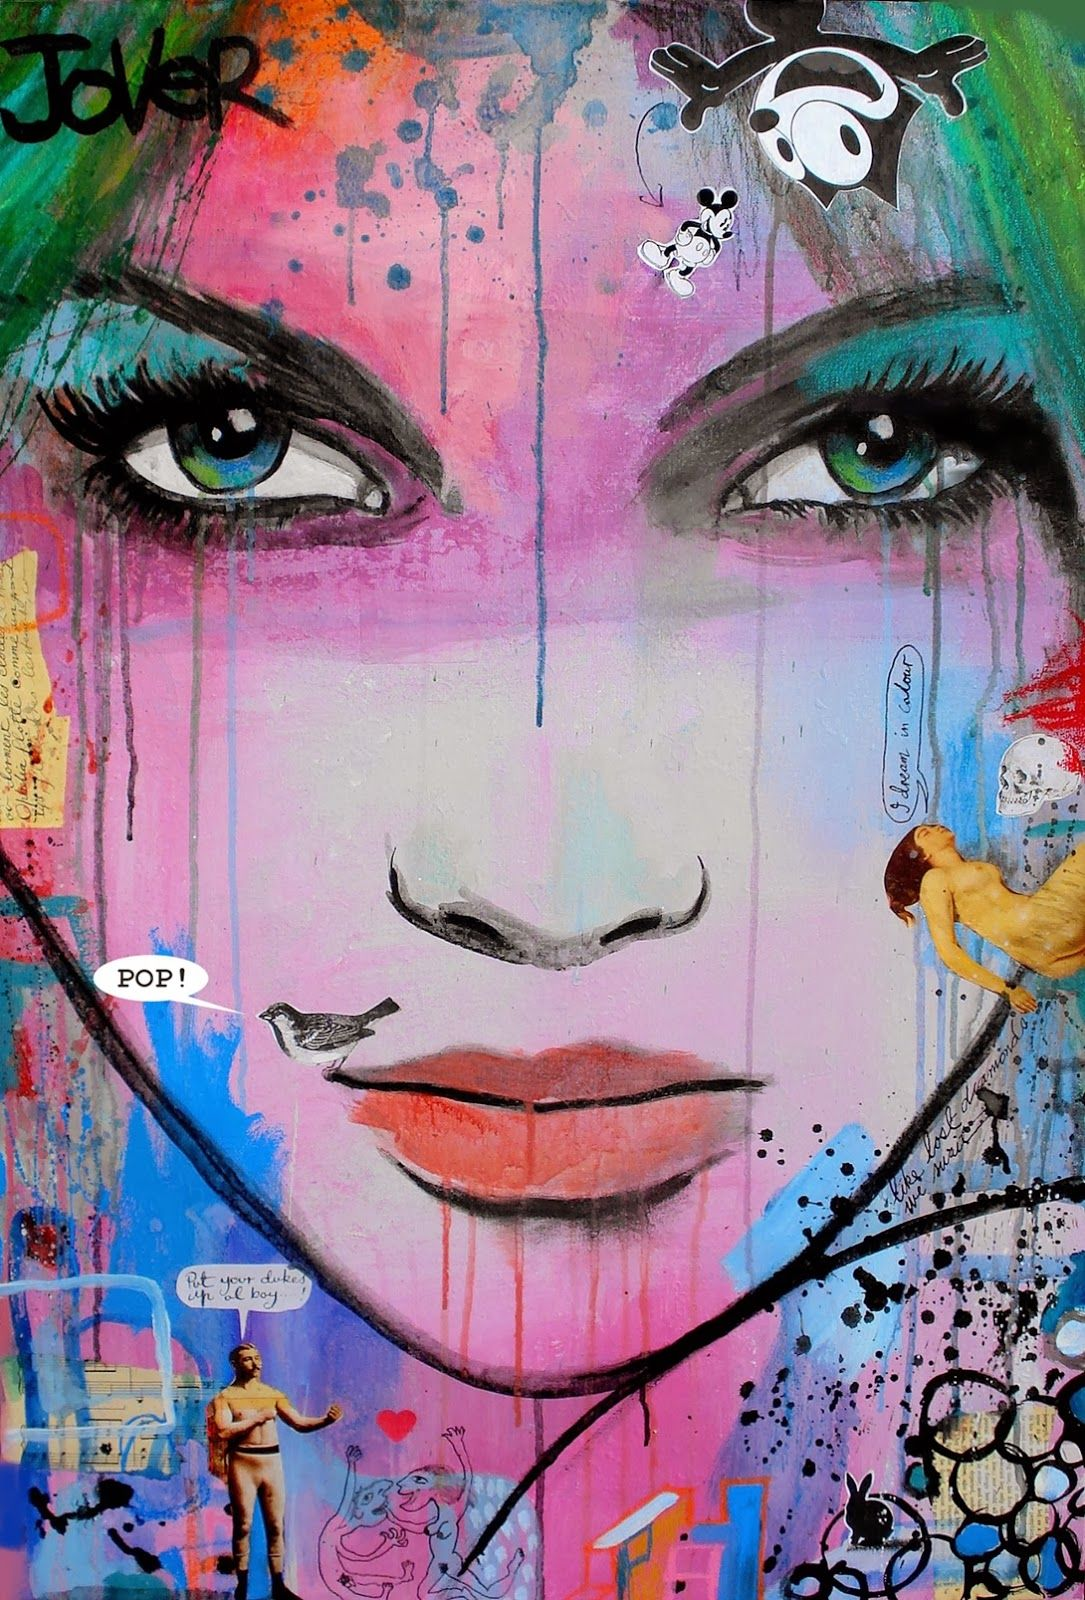 """I paint, i draw and i do it everyday"". Loui Jover is an Australian based painter with a unique style of art. He basically uses ink on pages from vintage books to create eye-catching and emotionally charged images of women's faces."